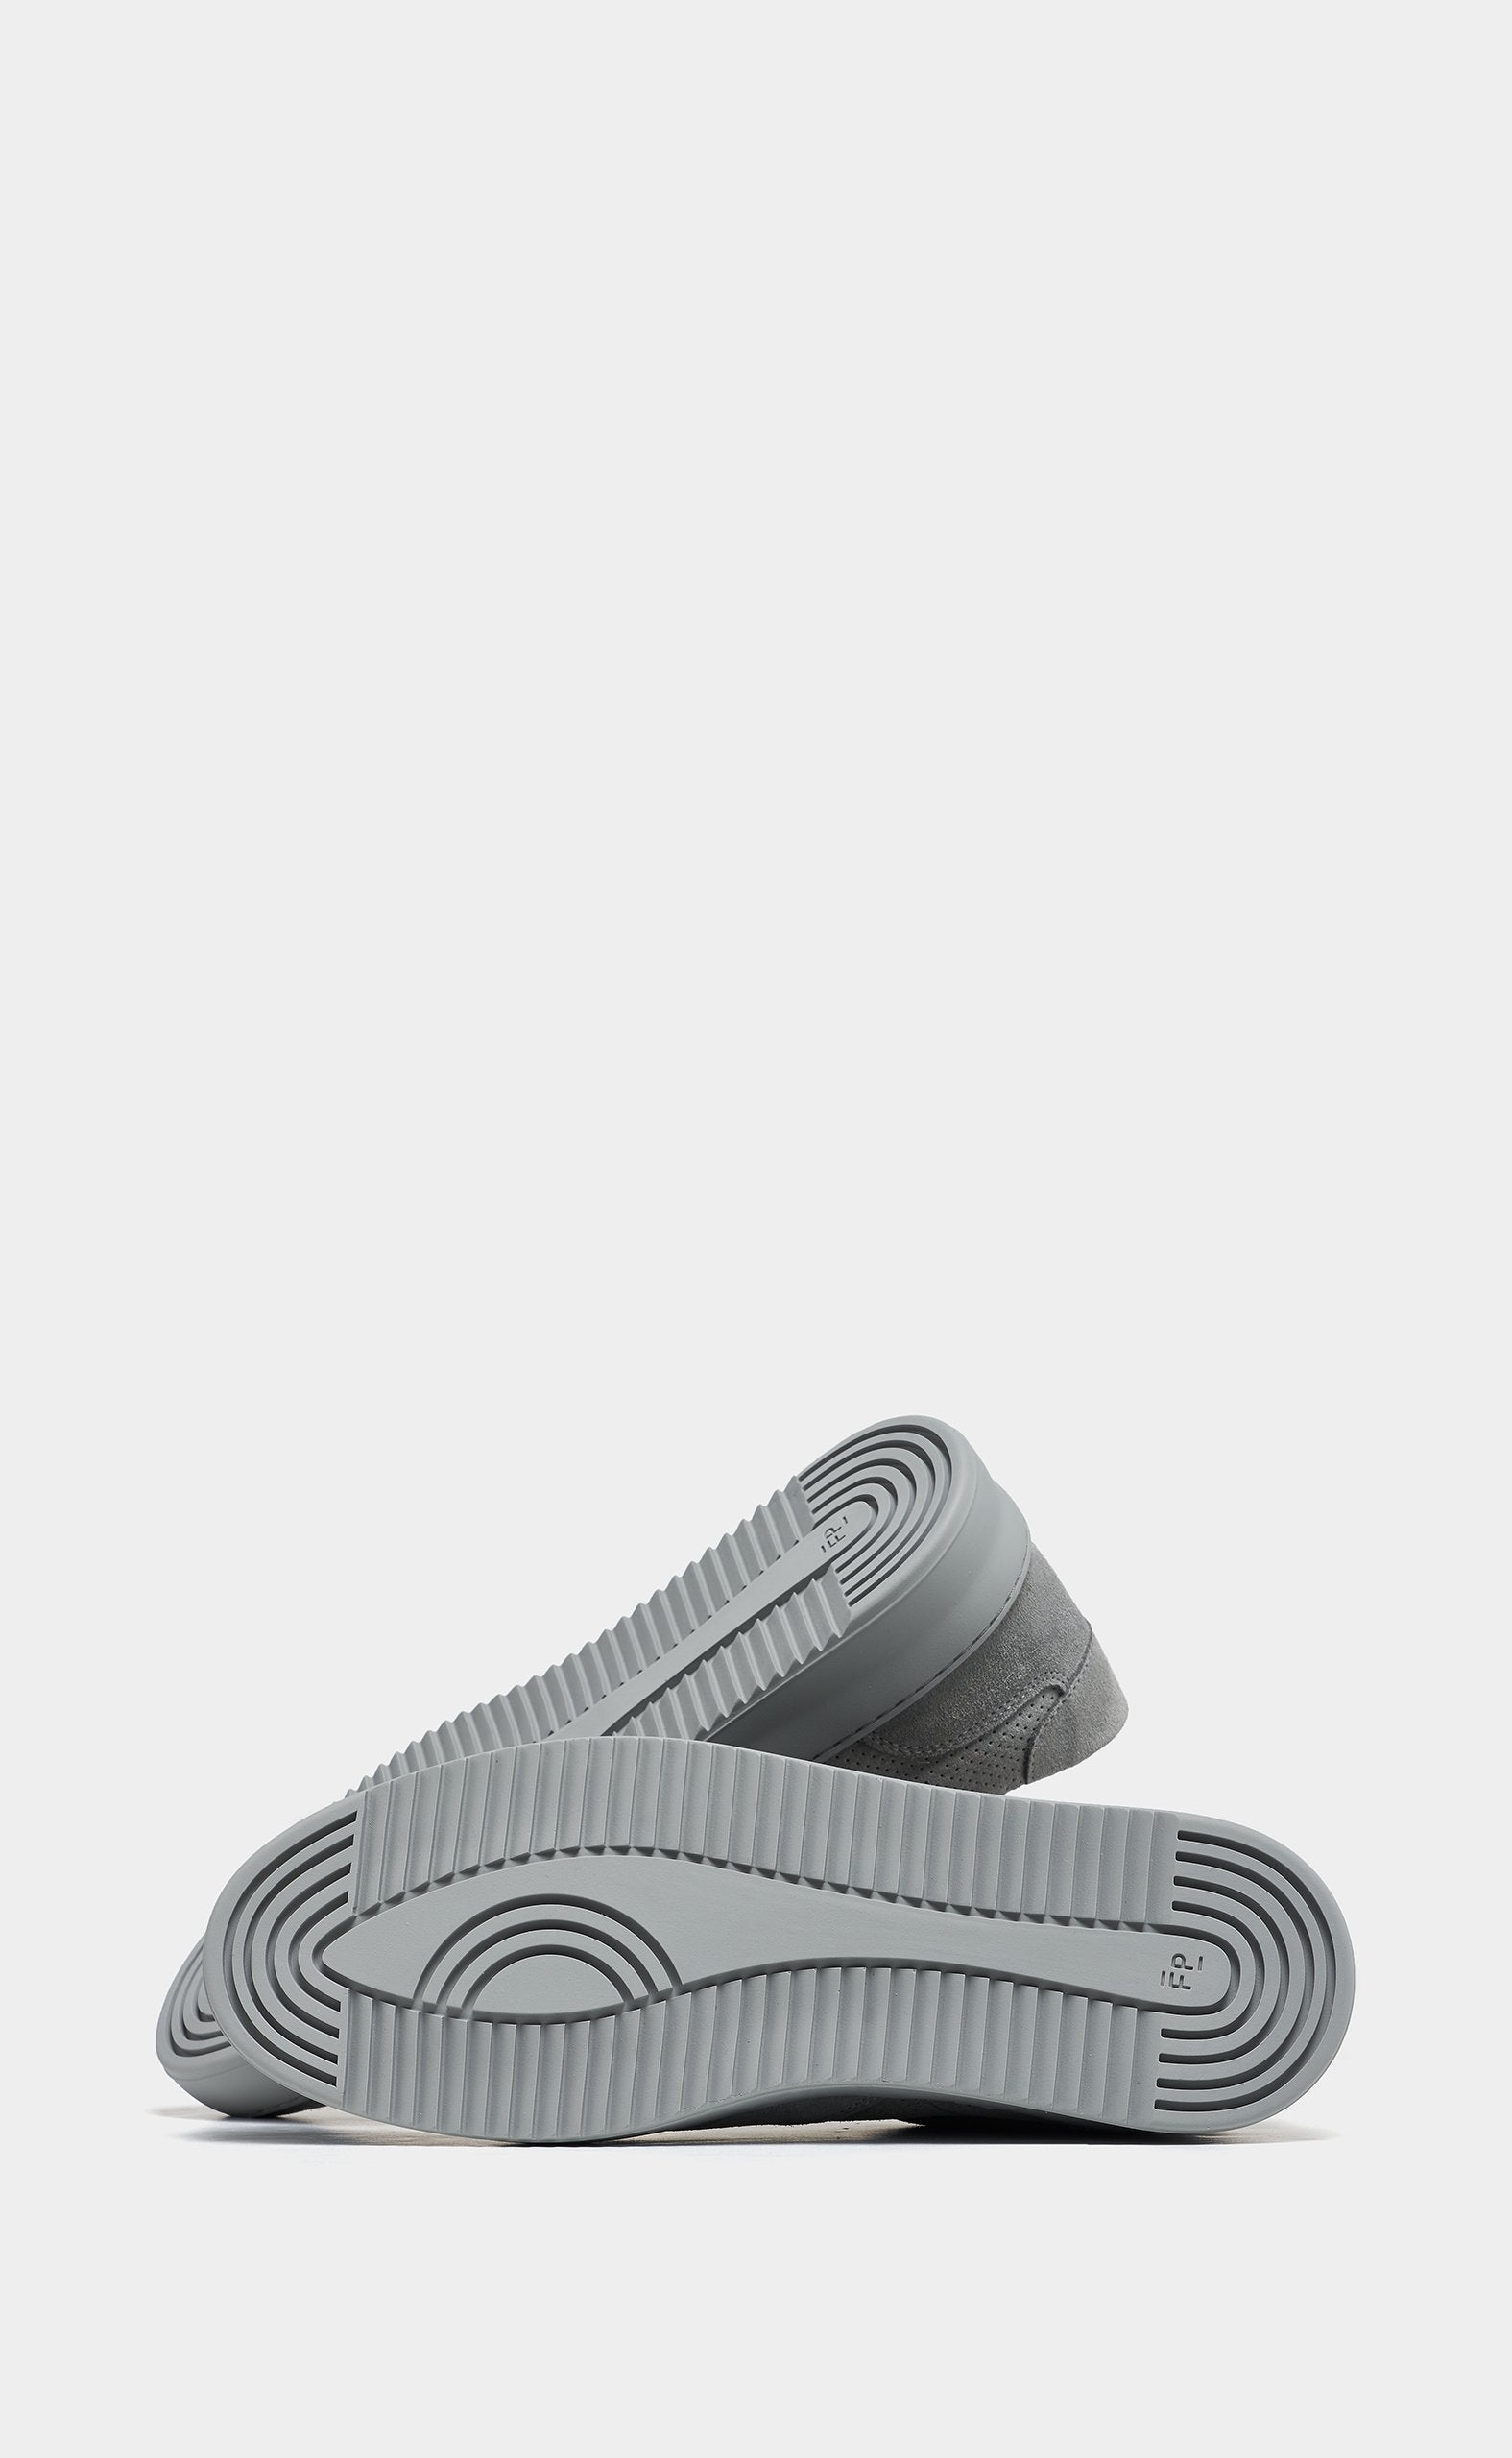 Low Mondo Ripple Suede Perforated Cement Grey